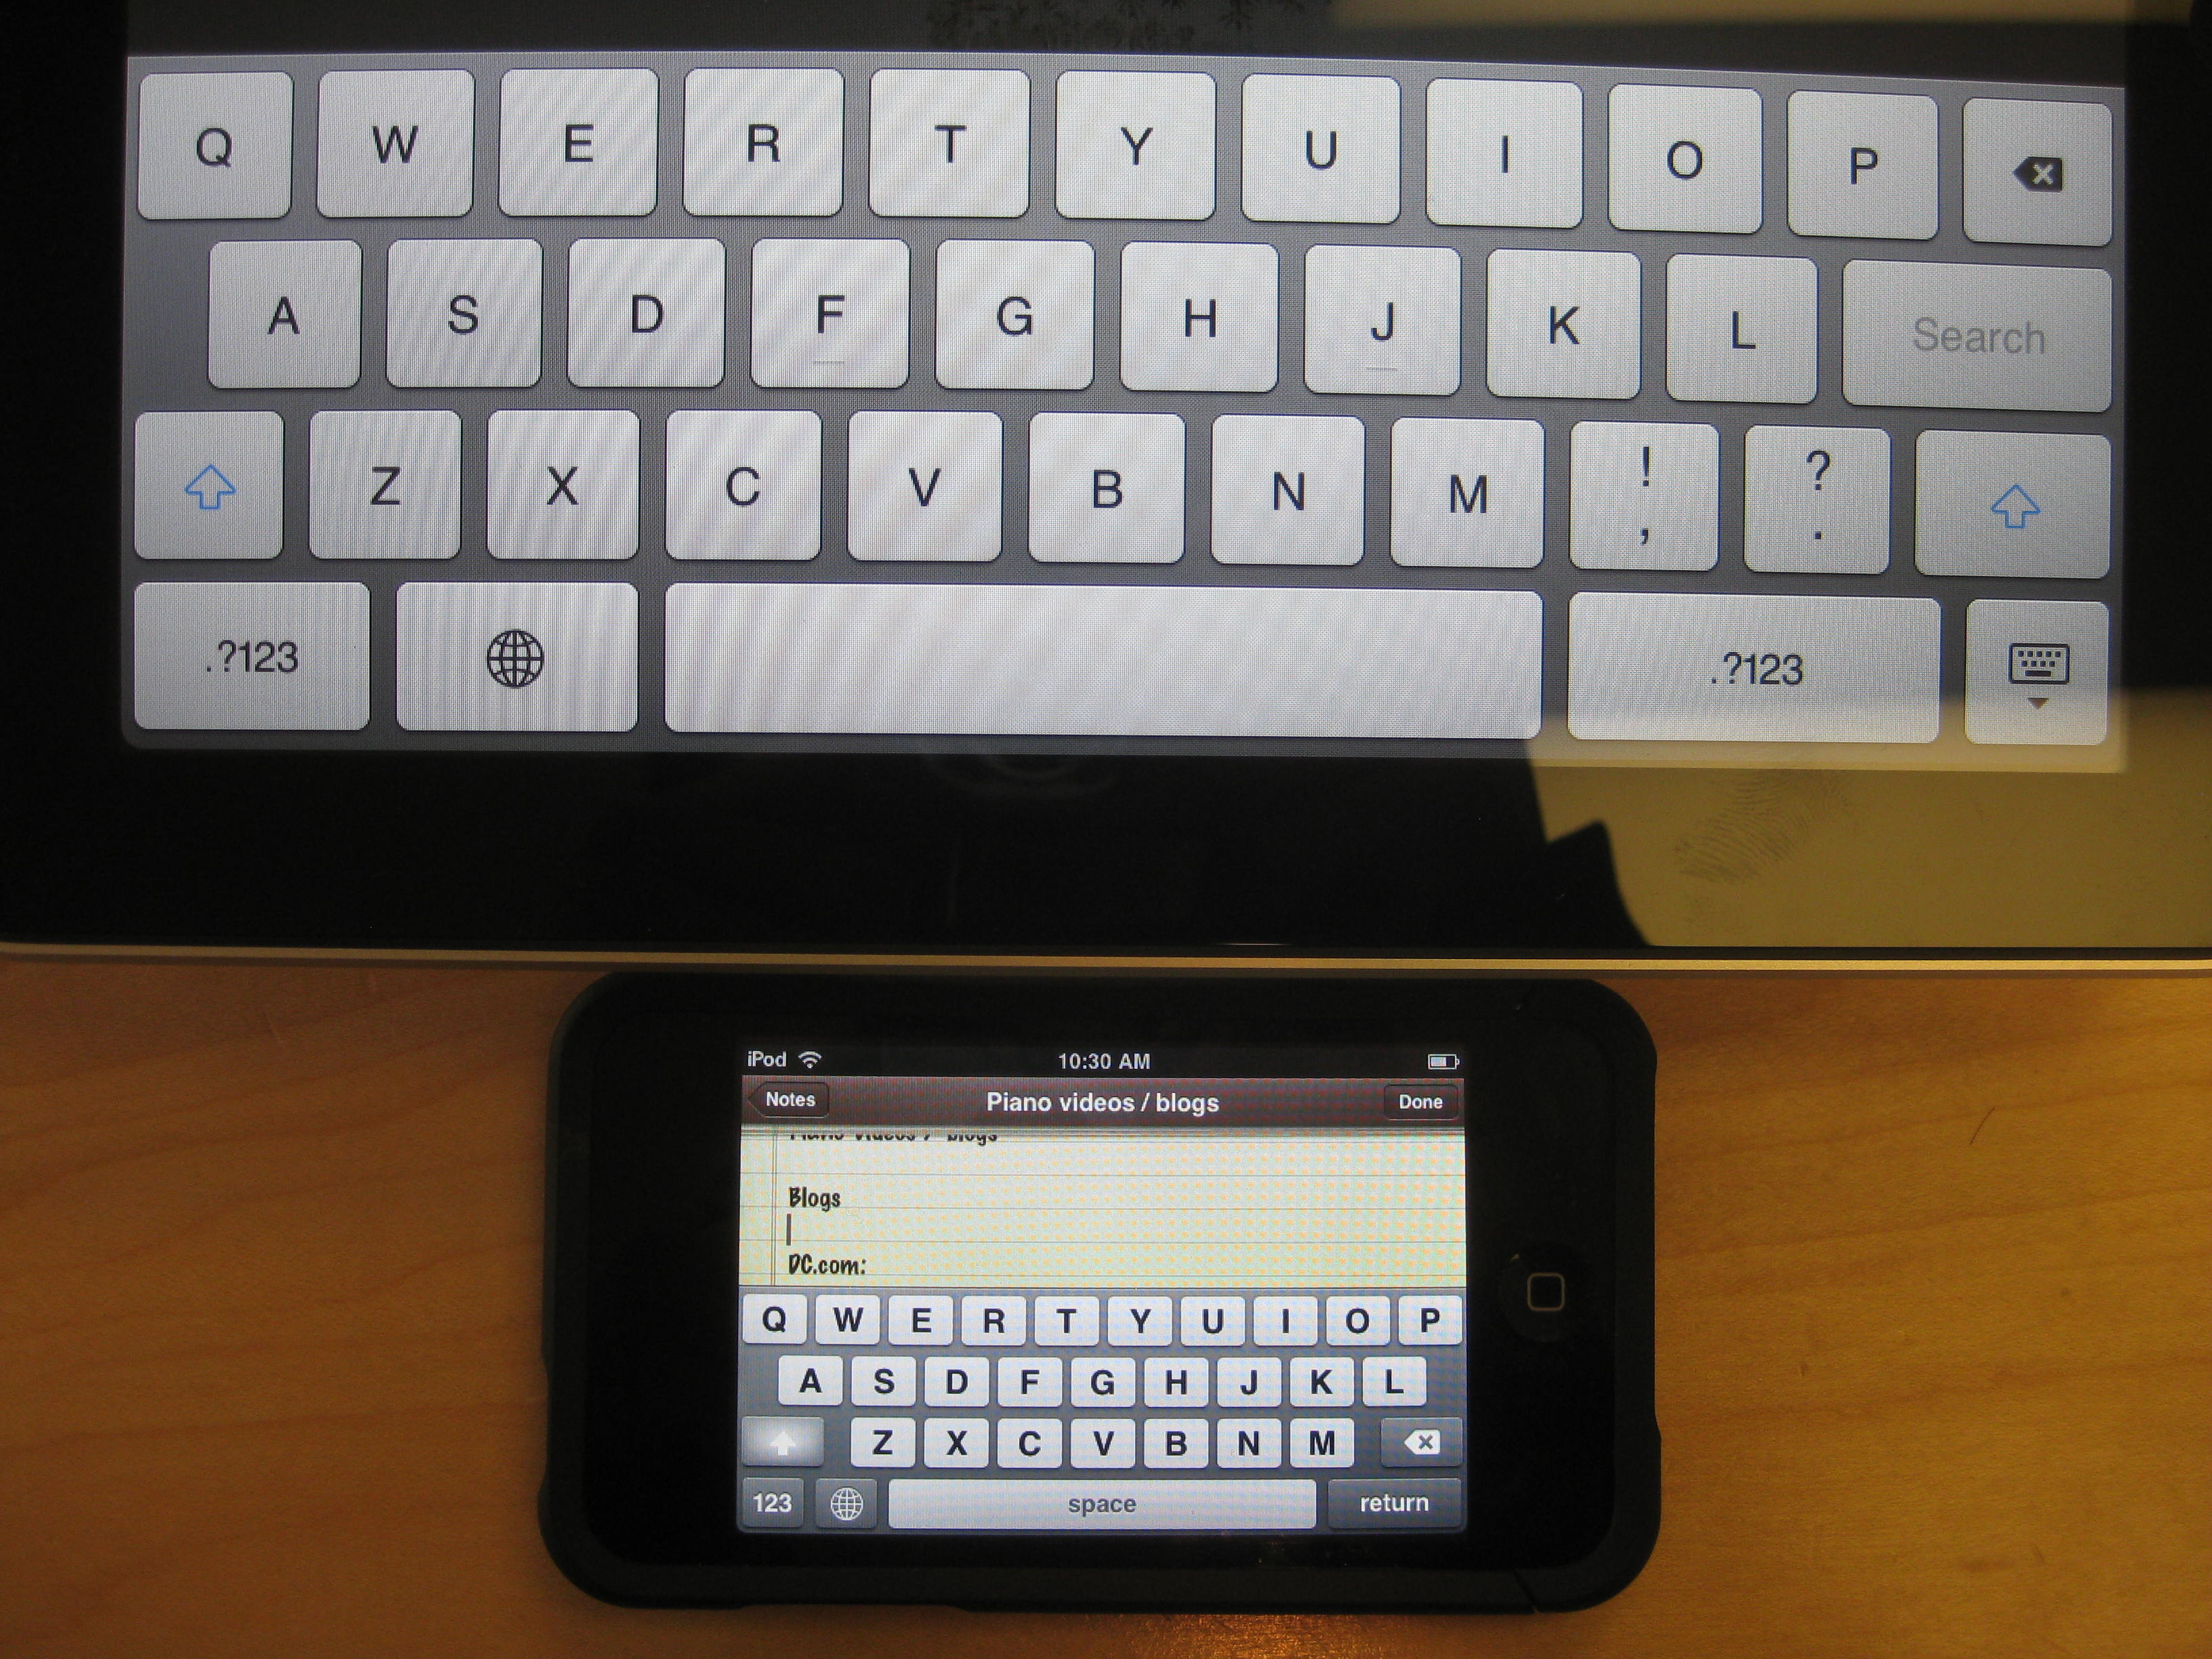 Ipad Comparison Chart: IPad - iPhone keyboard.jpg - Wikimedia Commons,Chart